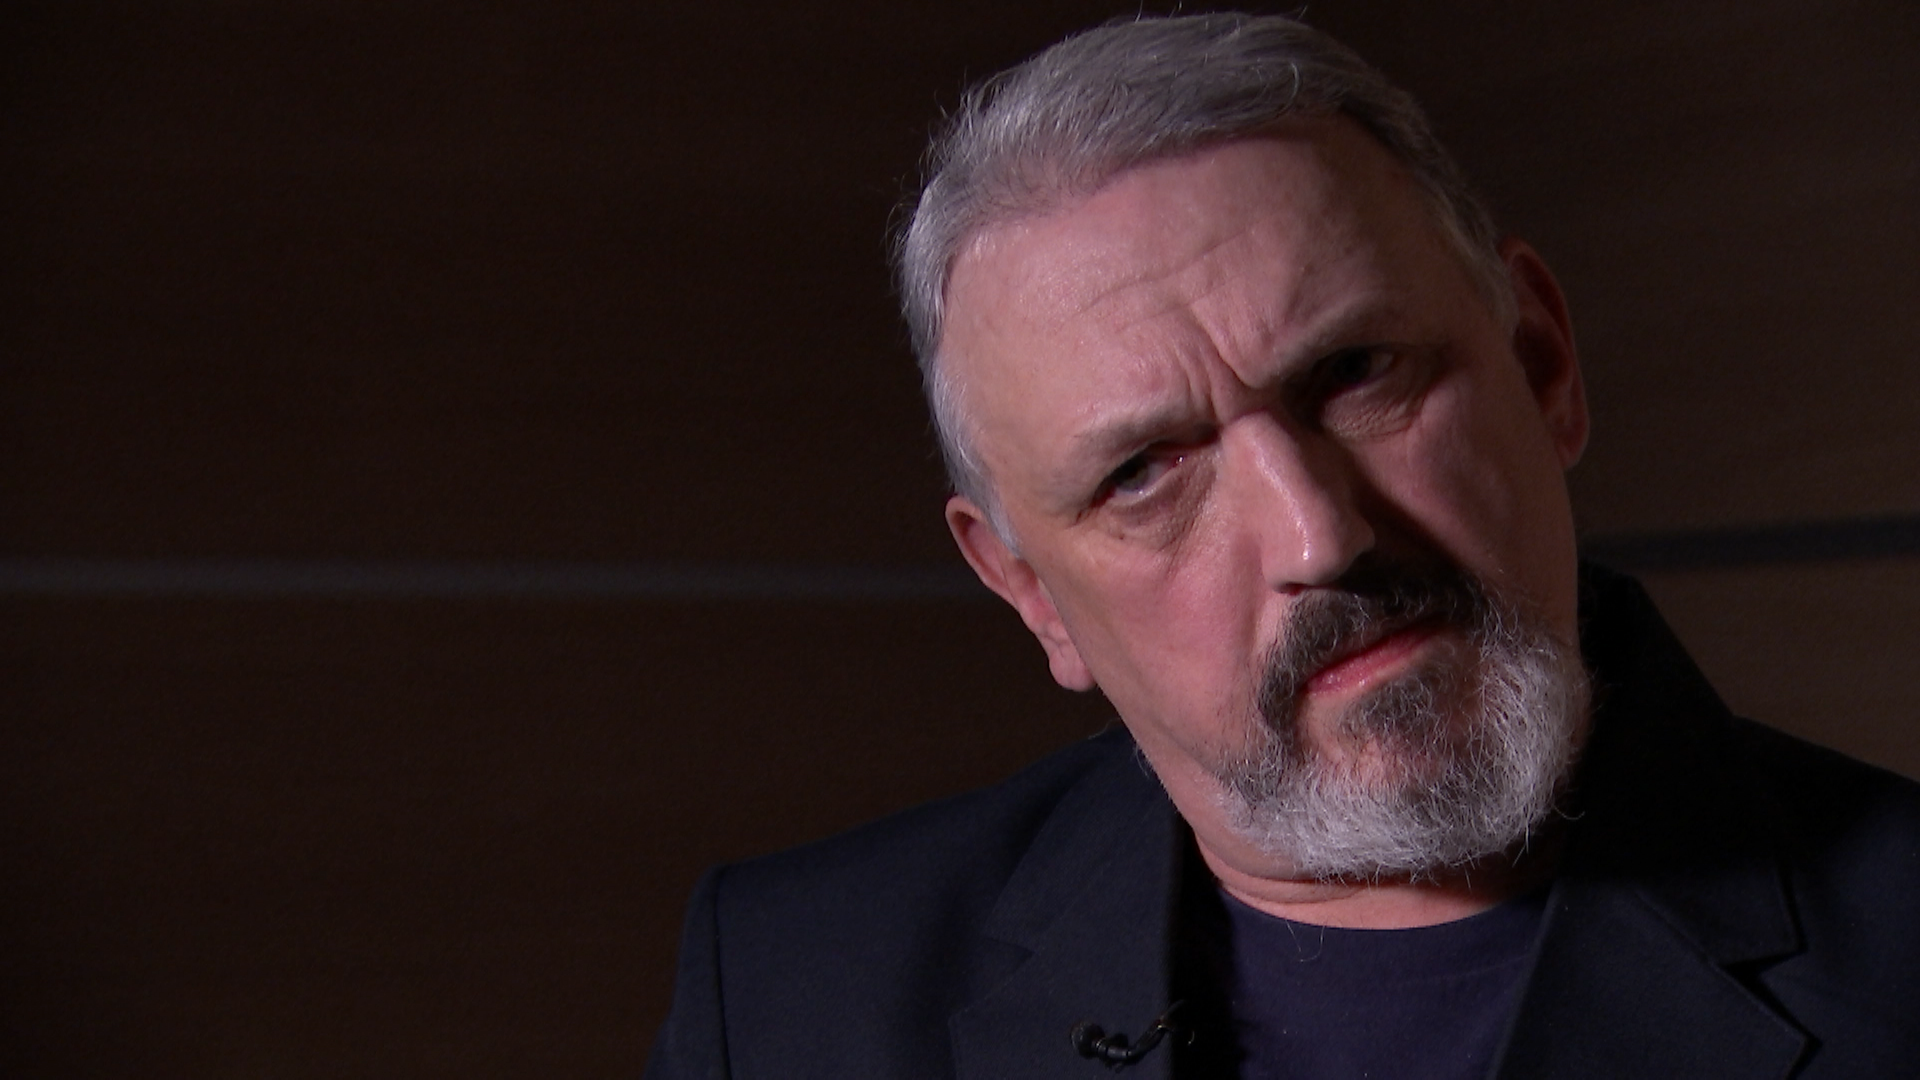 Exclusive: Neo-Nazi and National Front organiser quits movement, comes out as gay, opens up about Jewish heritage